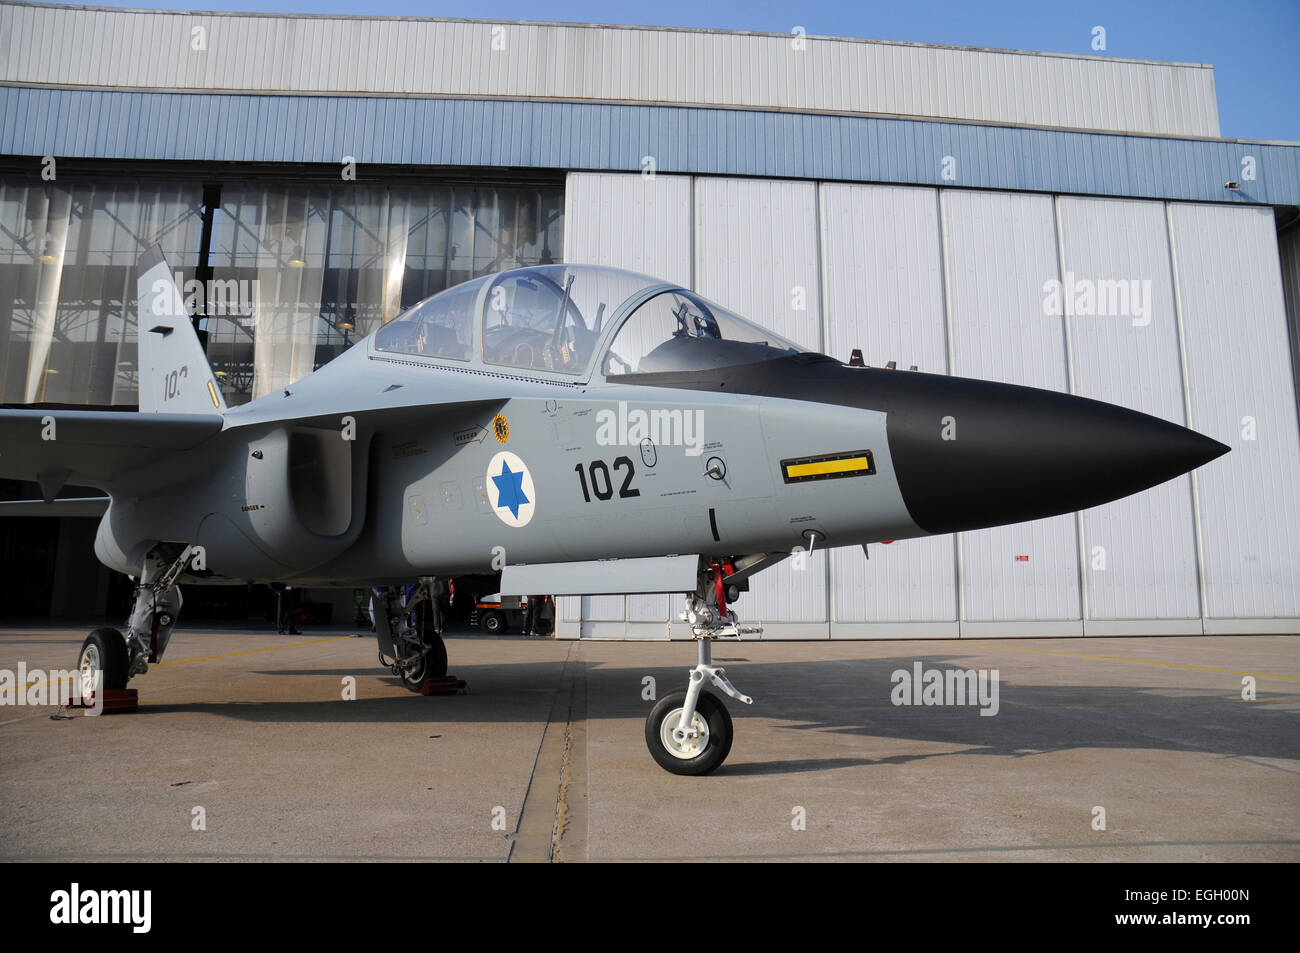 The first Alenia Aermacchi M-346I Lavi trainer of the Israeli Air Force taken at Venegono Airport, Italy. - Stock Image